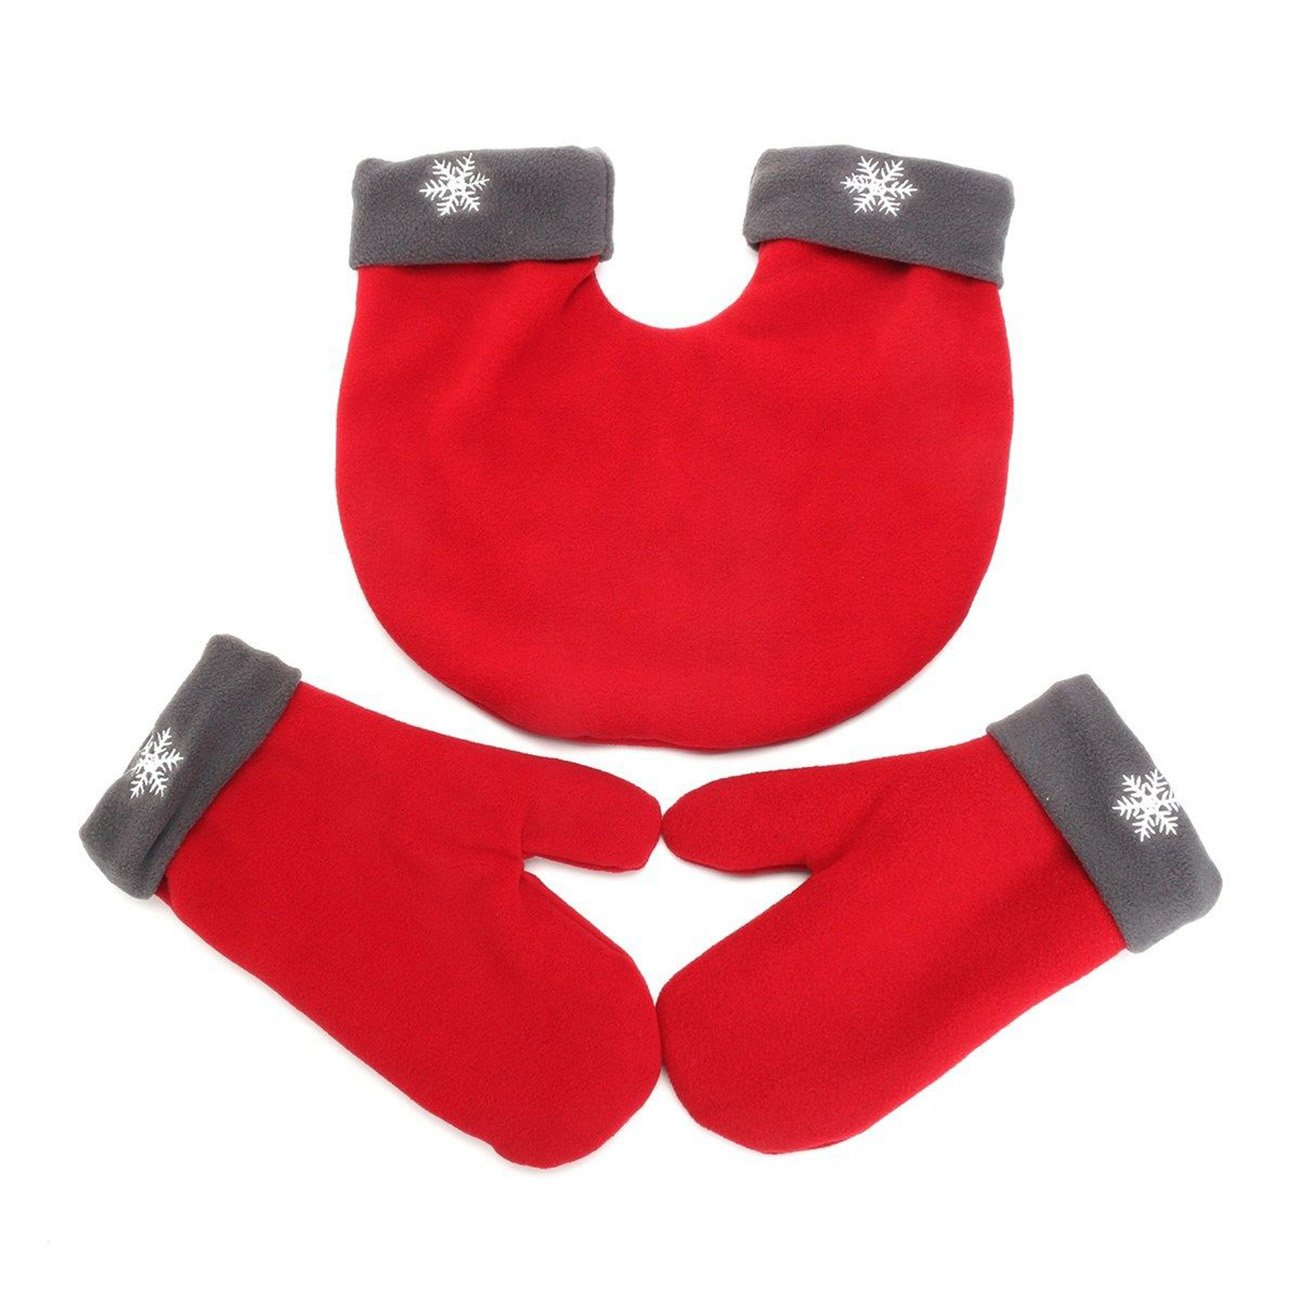 THEE Christmas Lovers Couples Winter Mittens Gloves Valentine's Gift PFFPST625r